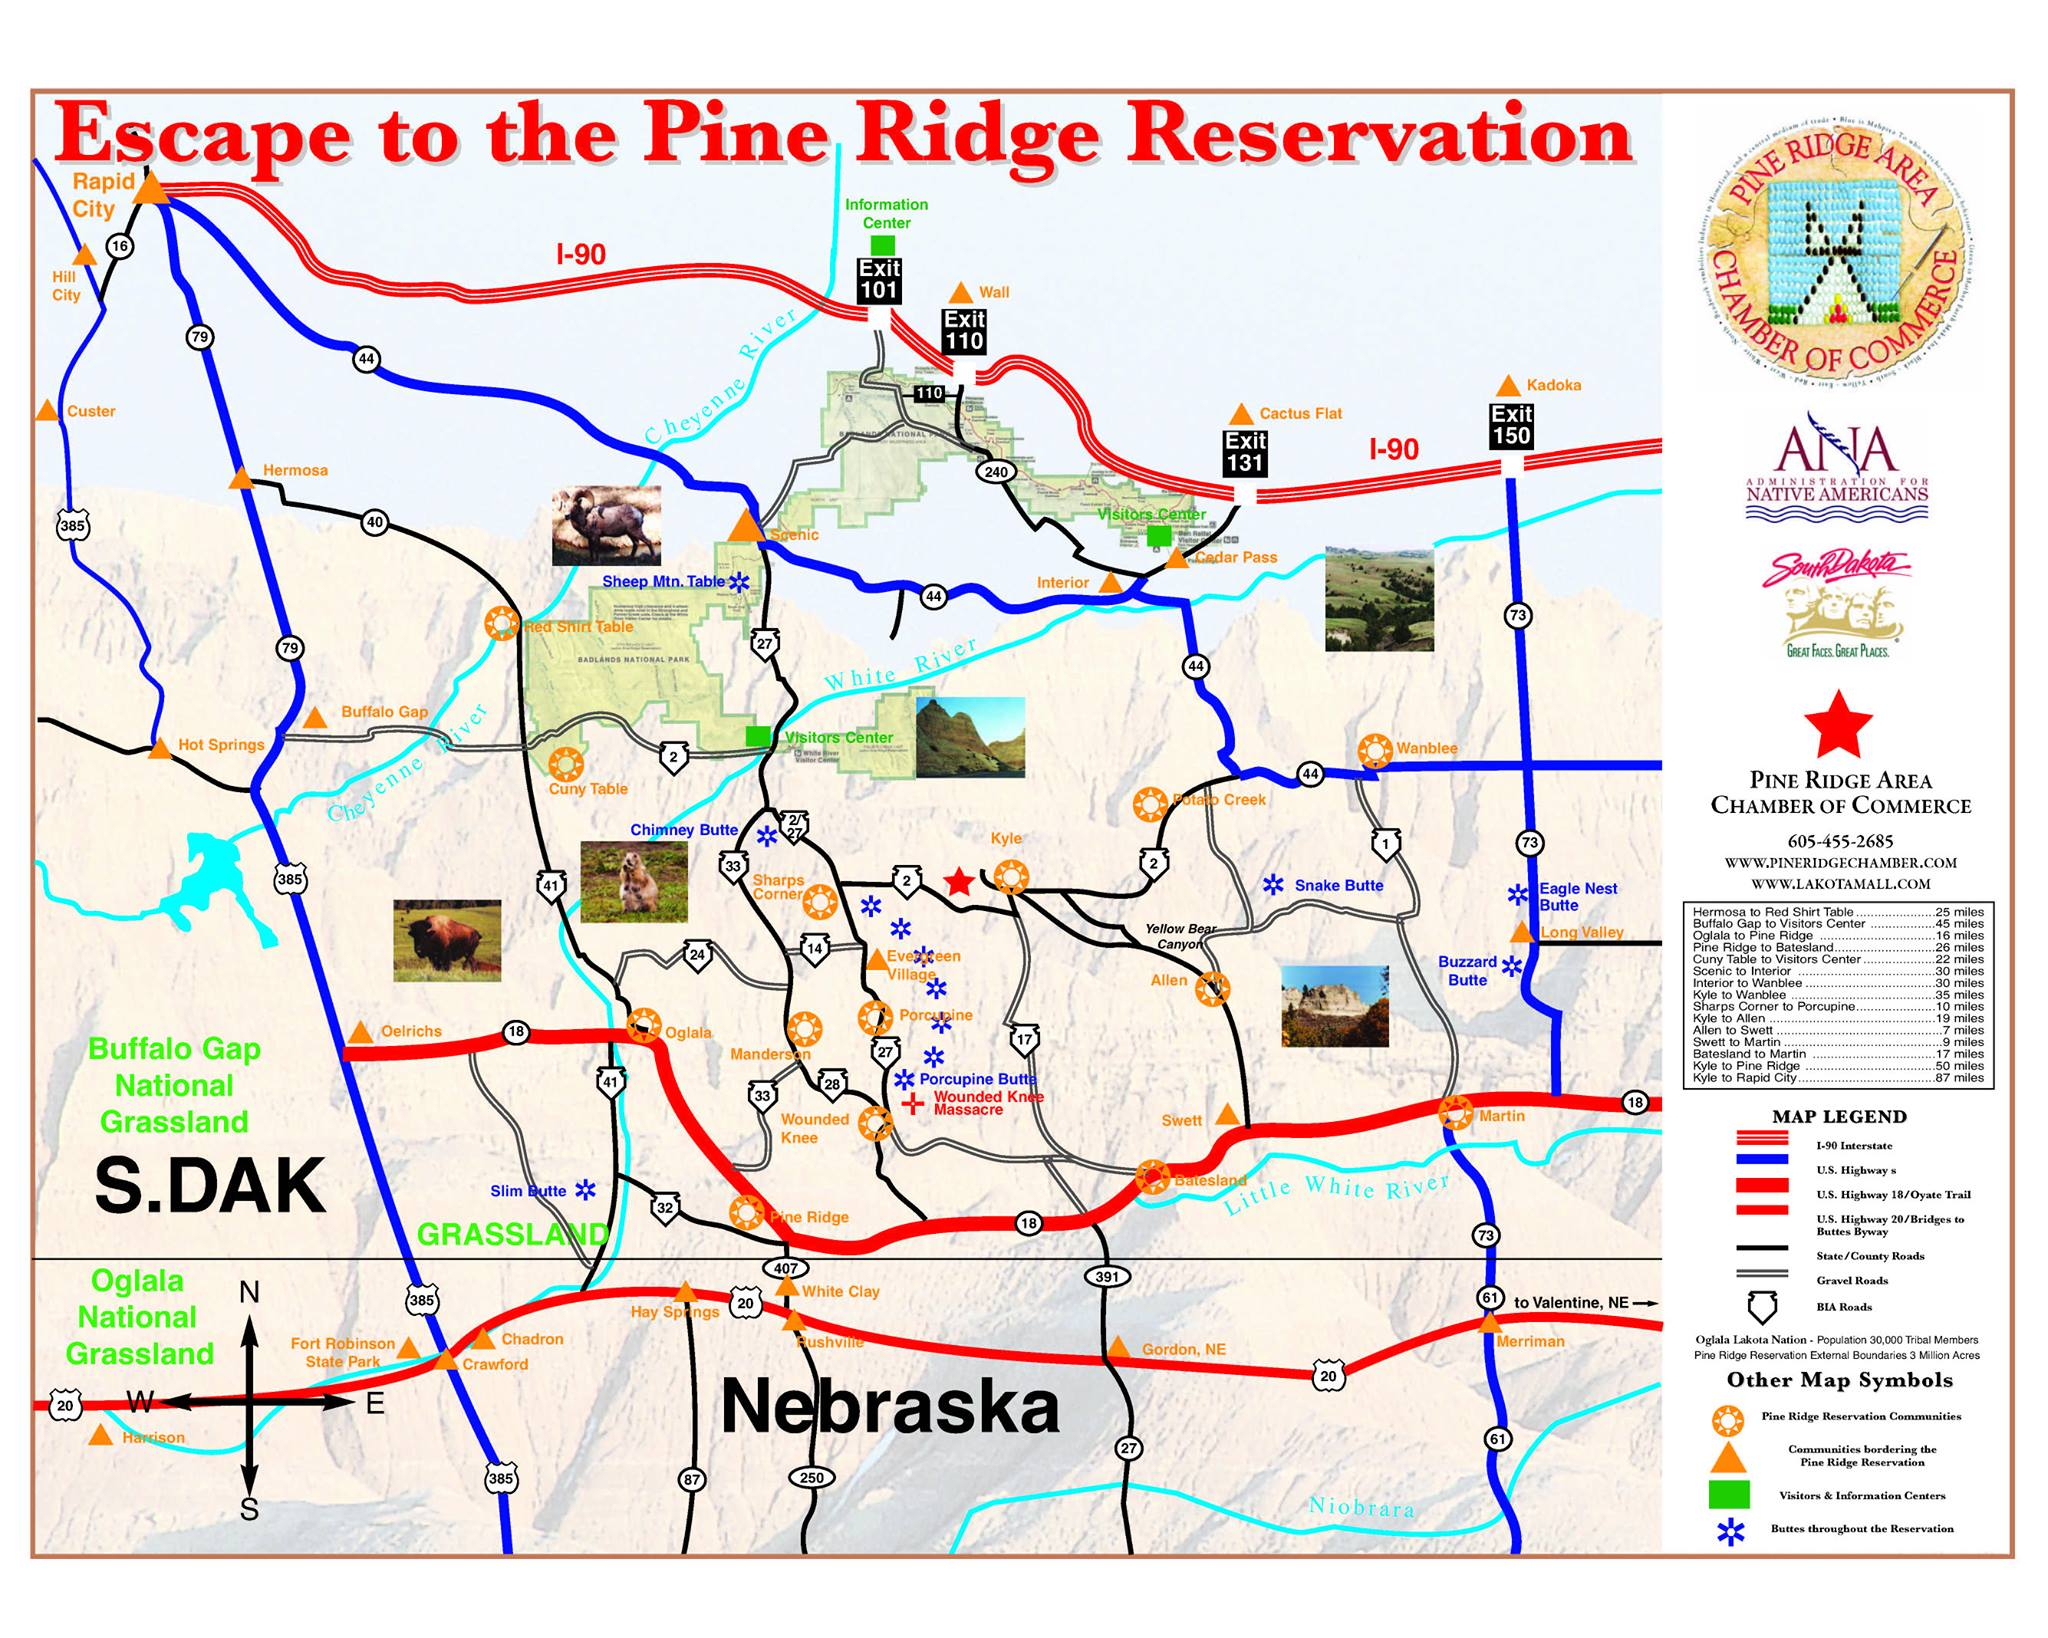 Come visit the Pine Ridge Area Chamber of Commerce and grab an Escape to the Pine Ridge Reservation map. Then explore the beautiful sites.